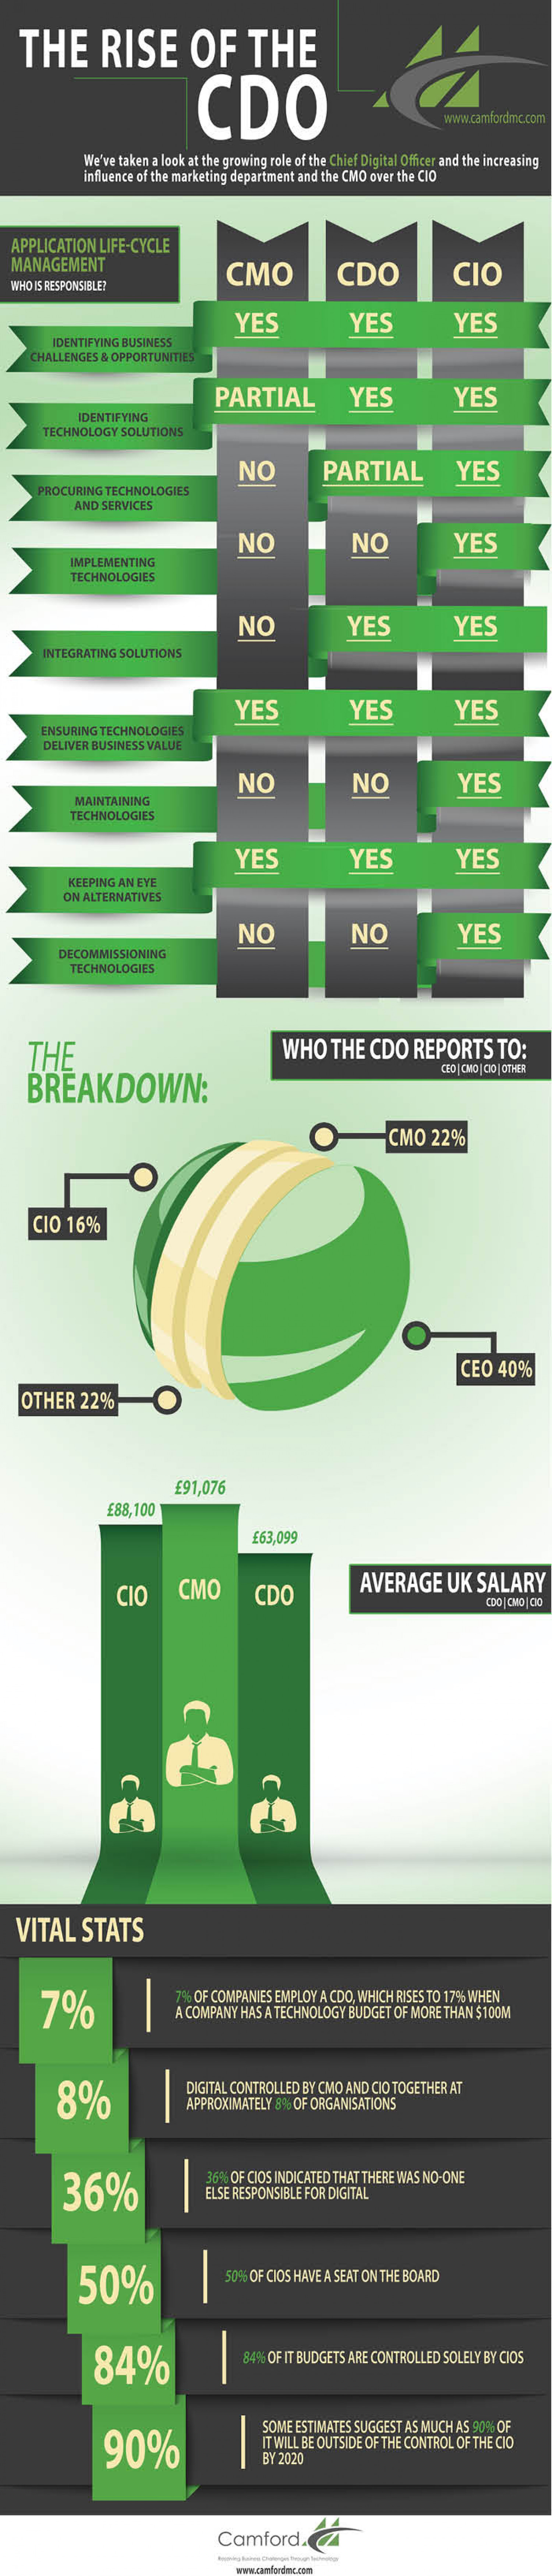 The Rise of the CDO Infographic